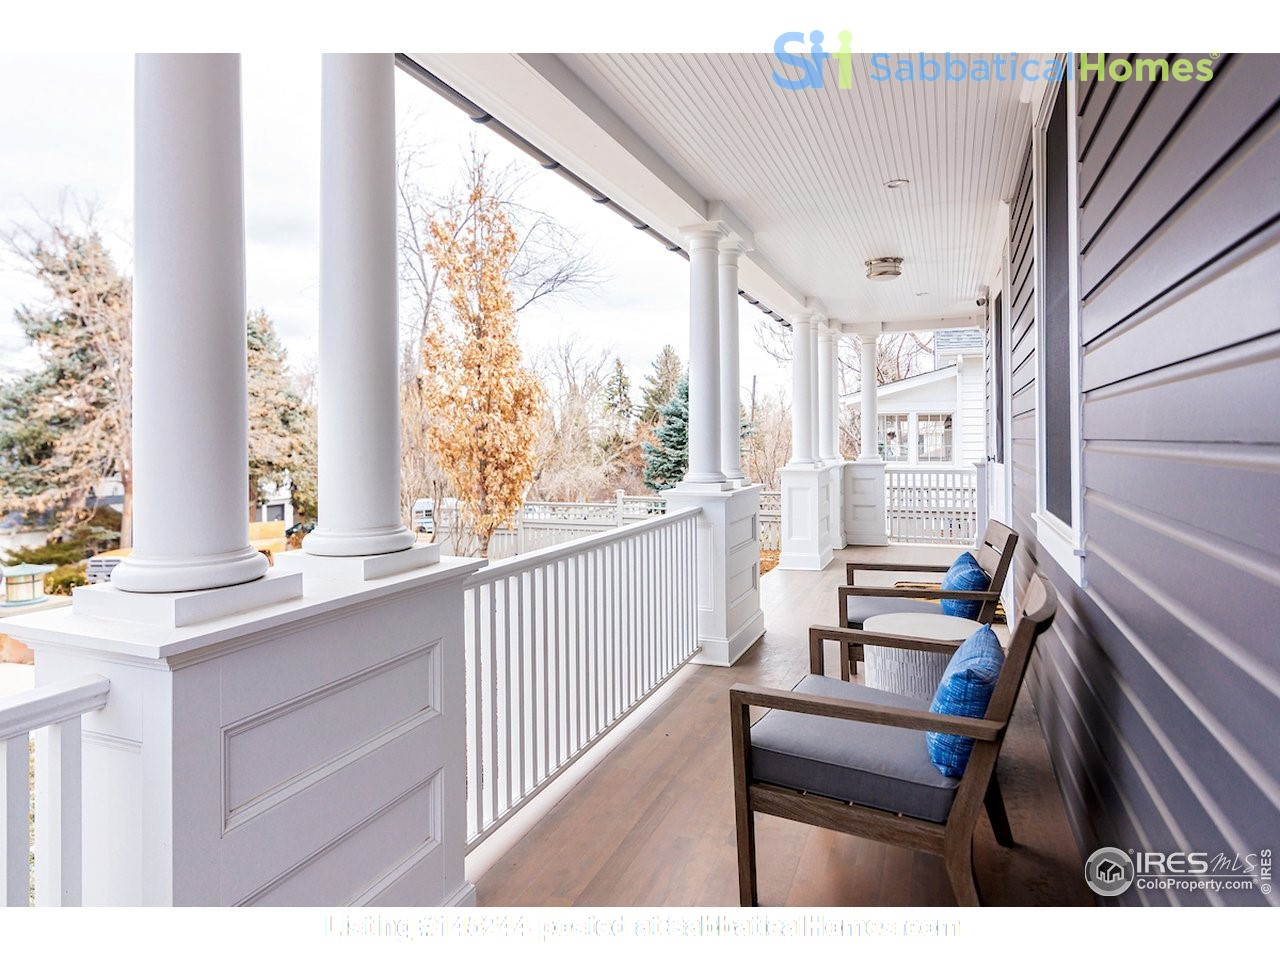 Luxury, Location, Lifestyle near downtown and close to CU Boulder Home Rental in Boulder, Colorado, United States 1